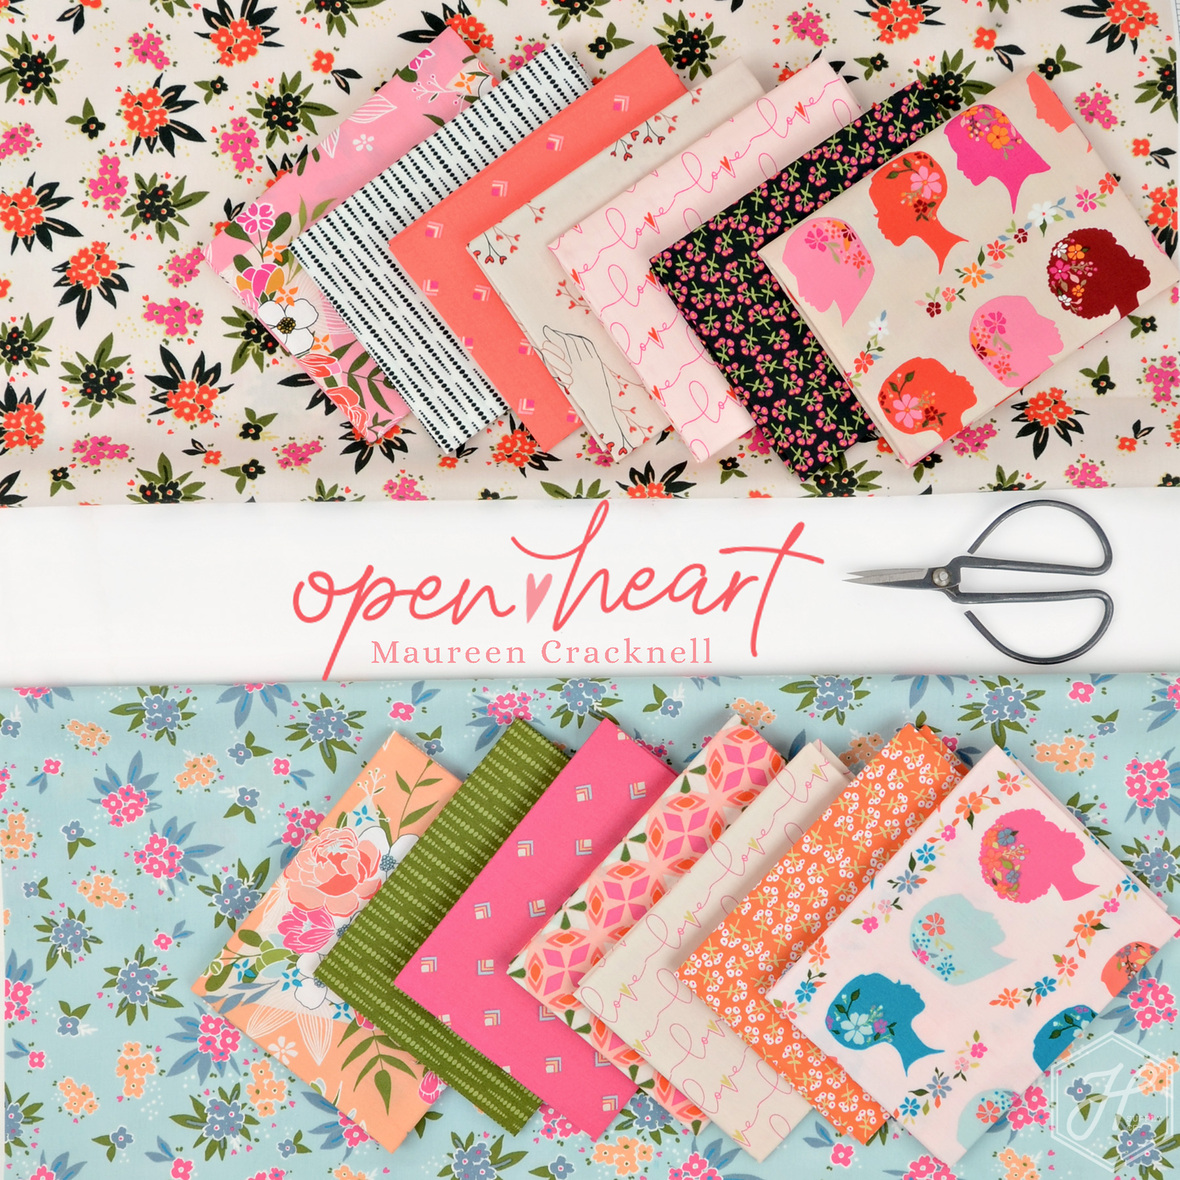 Open-Heart-Fabric-Maureen-Cracknell-for-Art-Gallery-at-Hawthorne-Supply-Co